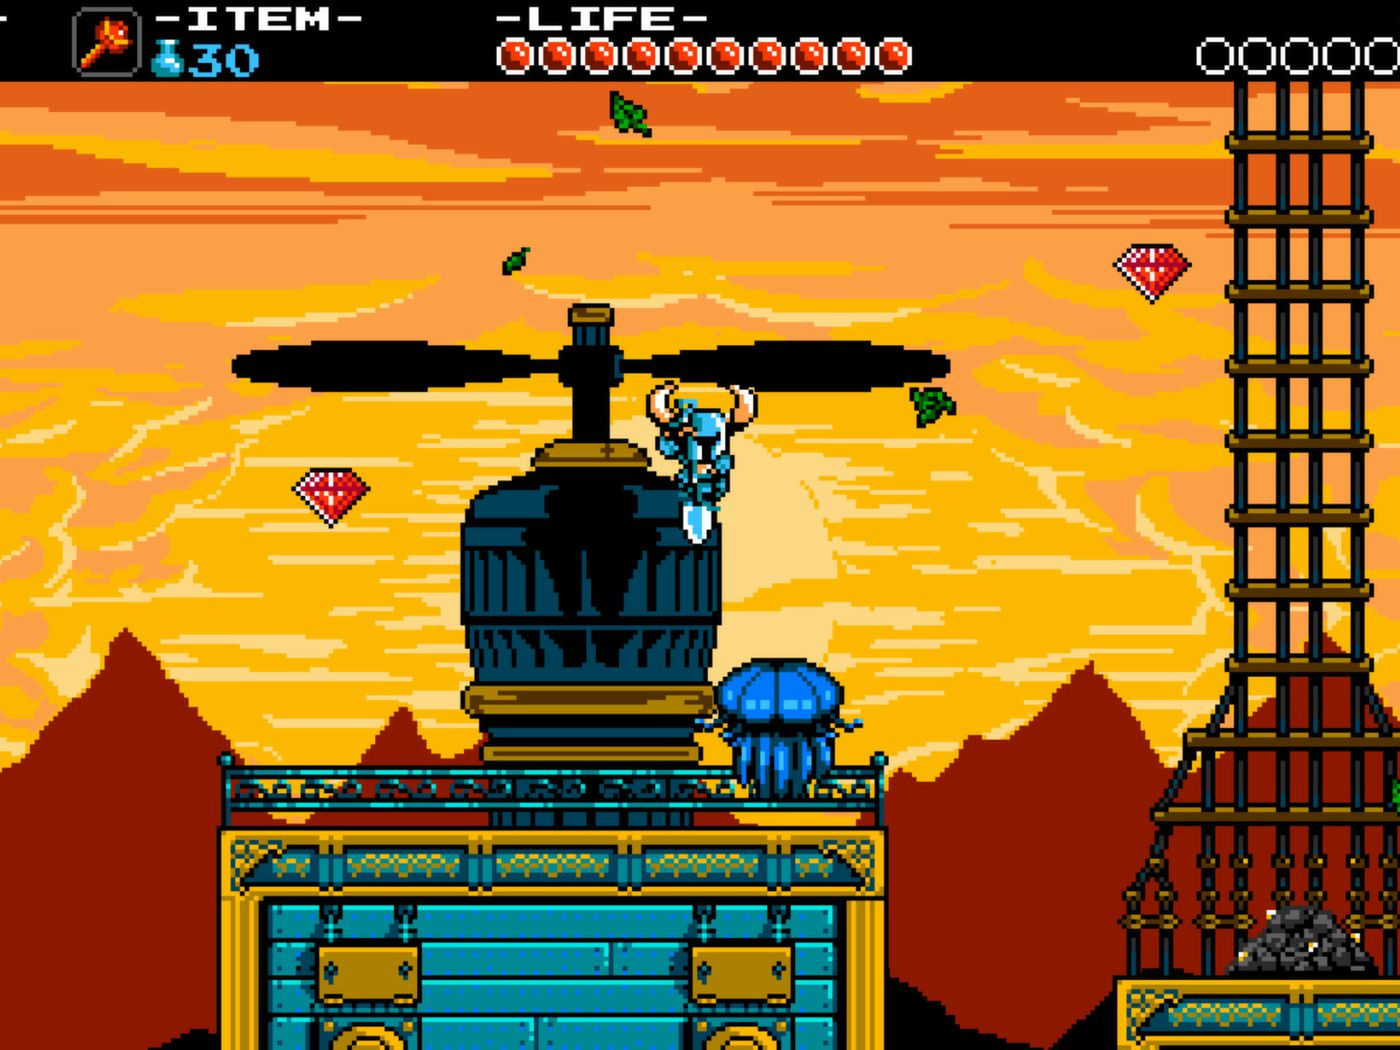 Why Shovel Knight is getting an amiibo and Kerbal Space is